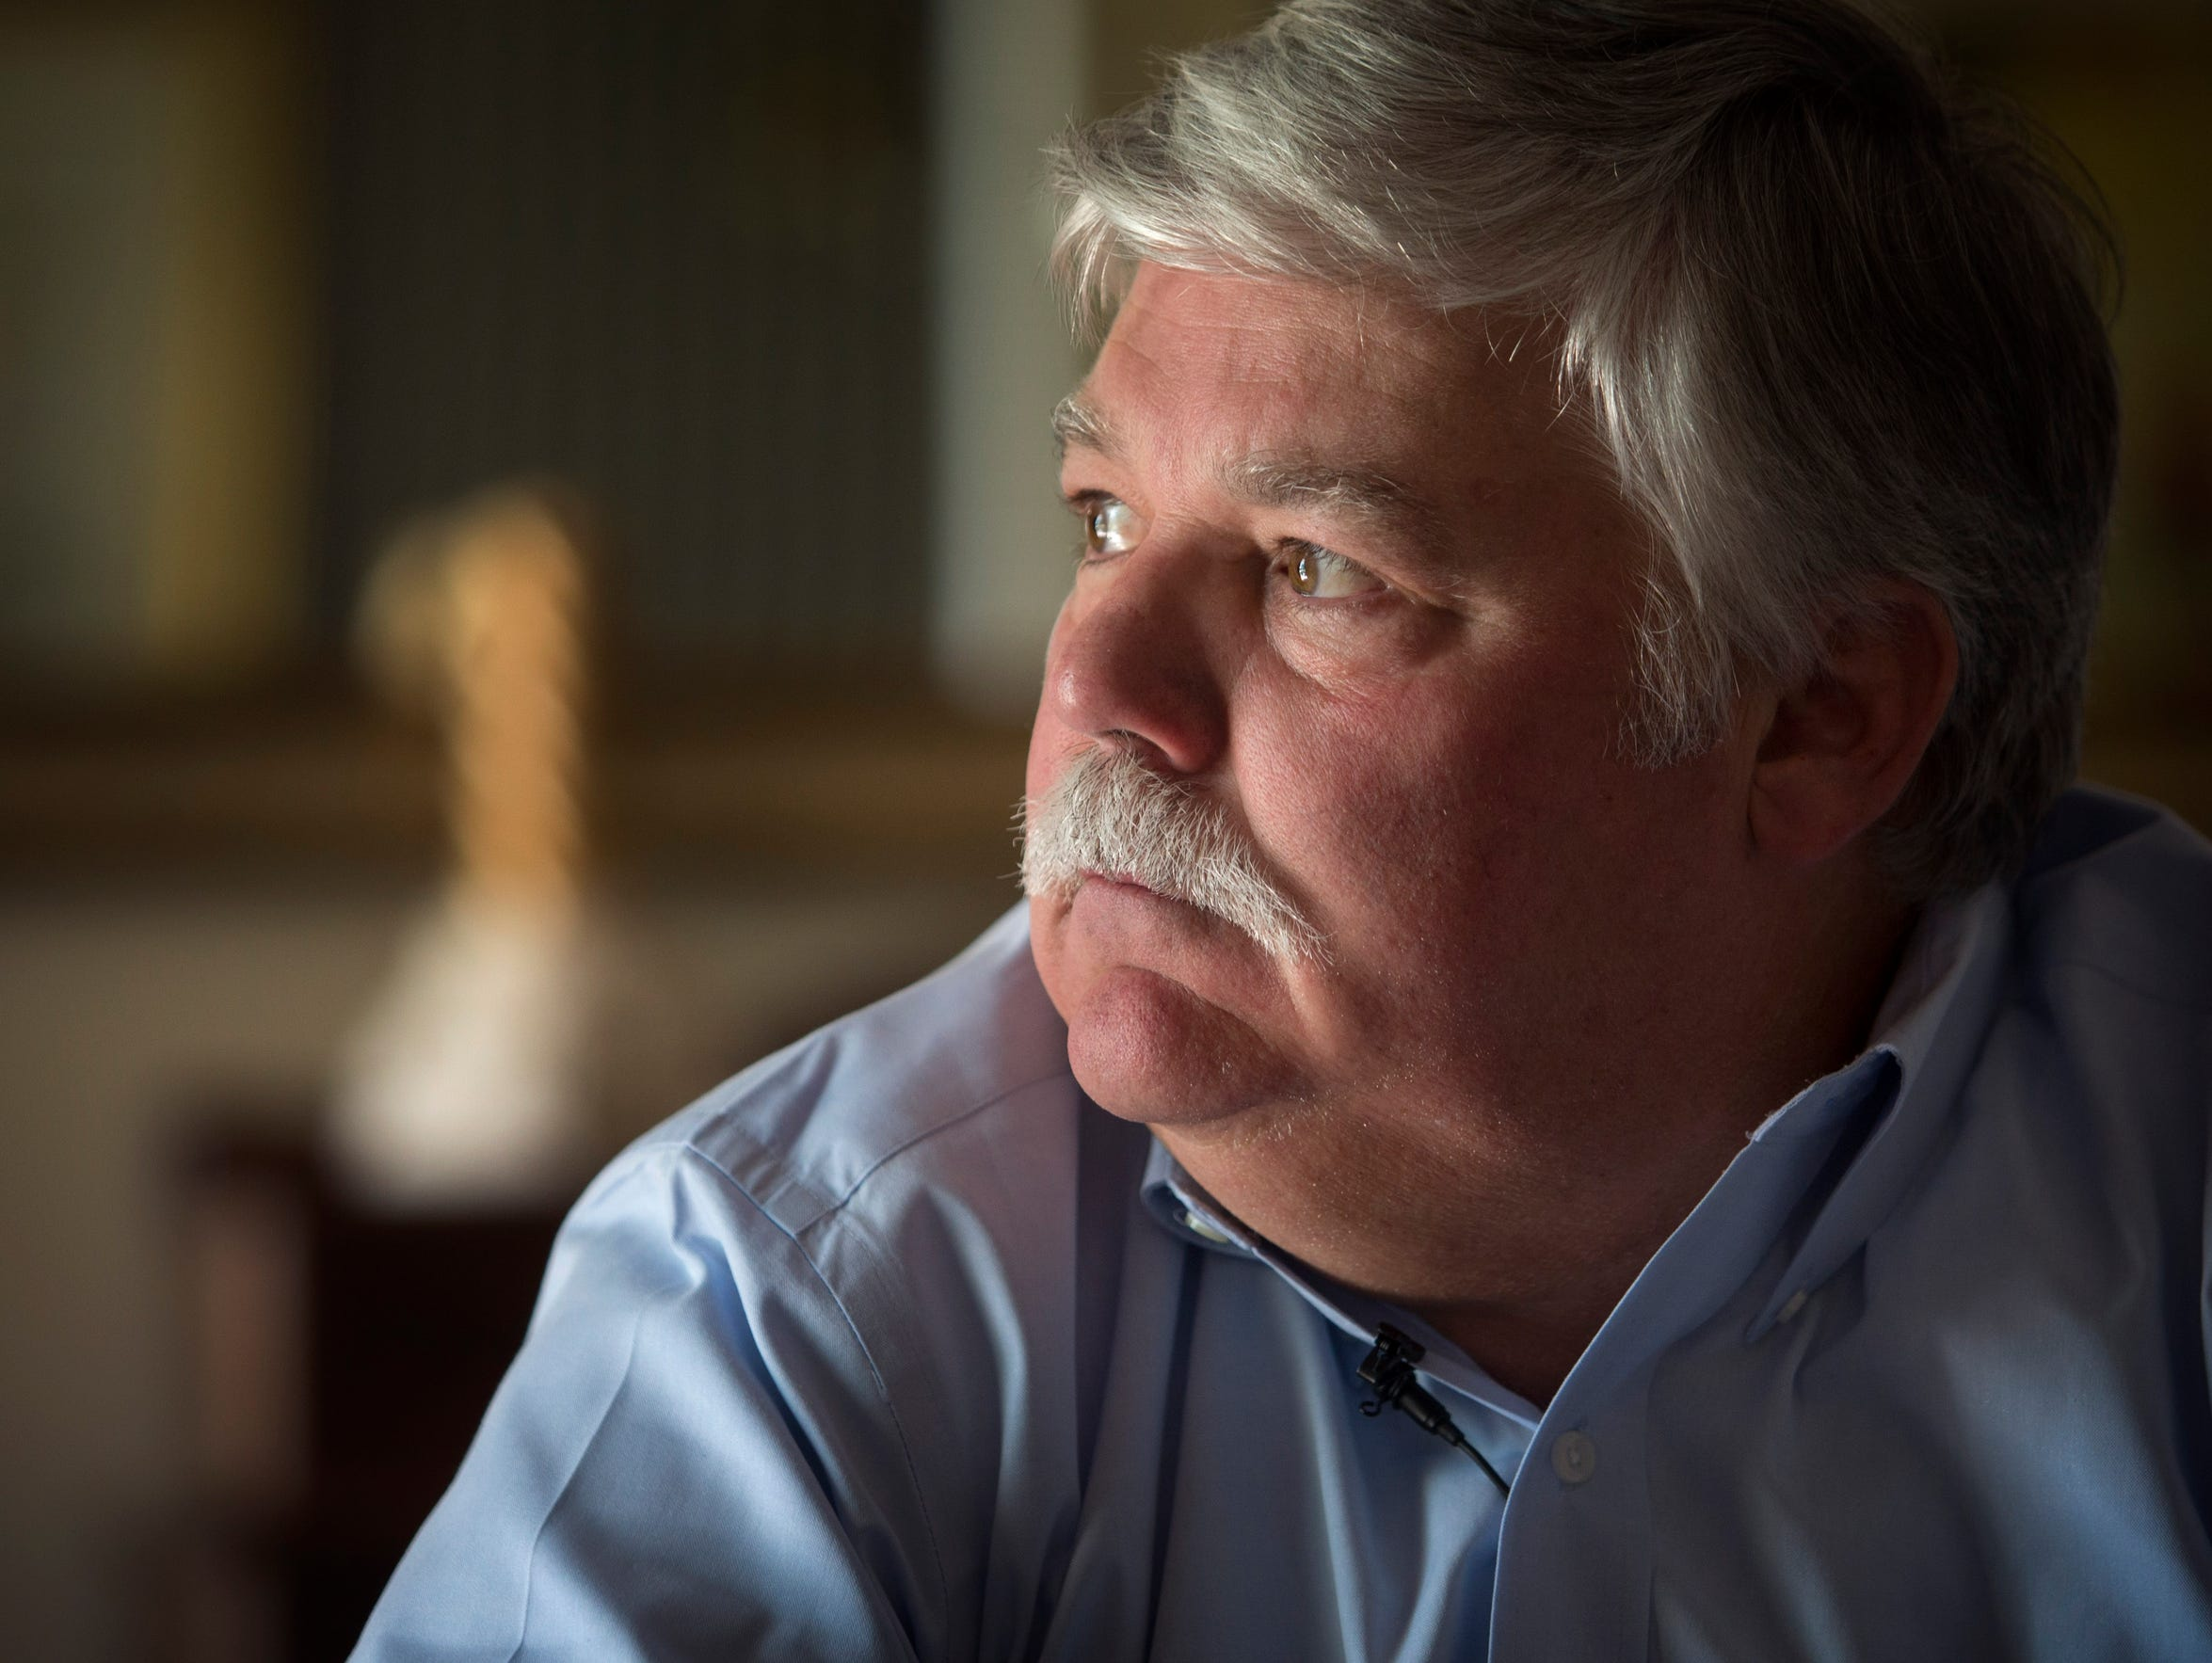 Pat Milam looks out the window of his dining room in